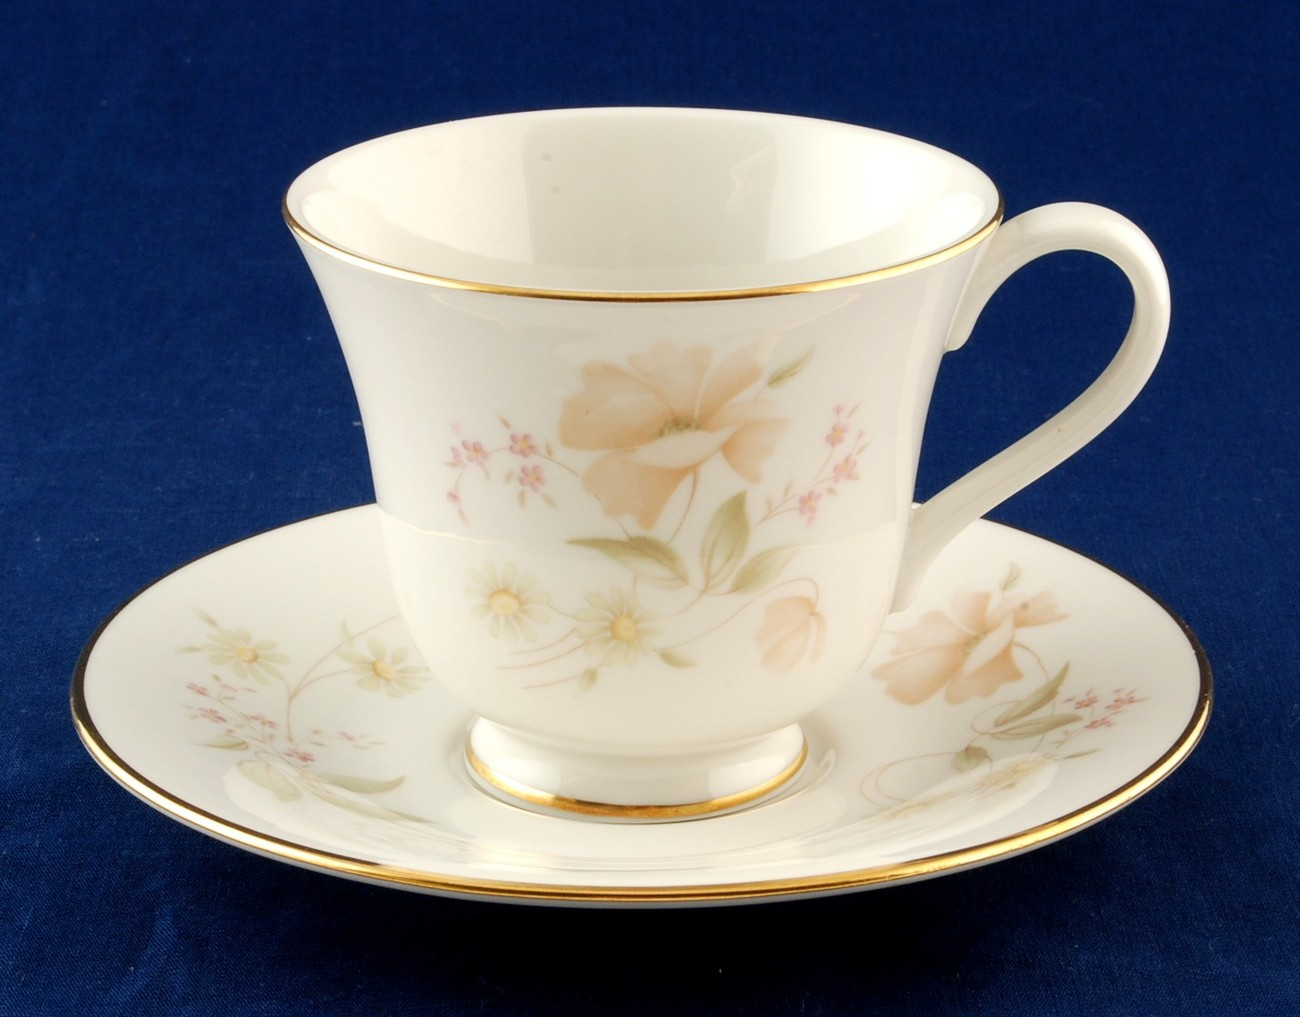 Royal Doulton Allure Cup & Saucer TC1151 New China